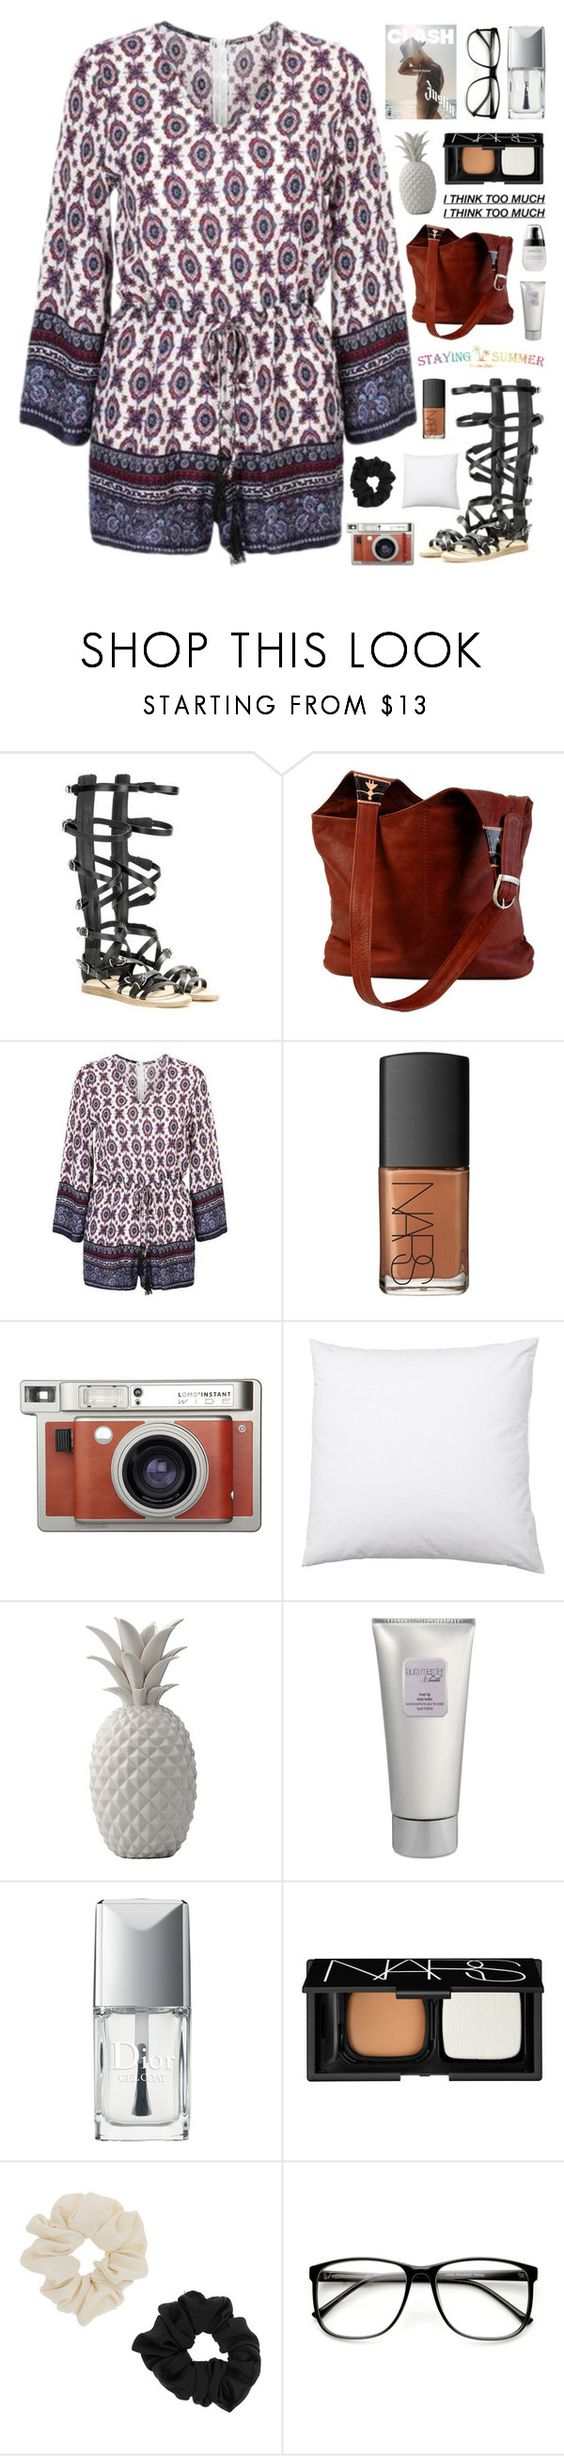 """STAYING🌴SUMMER"" by novalikarida ❤ liked on Polyvore featuring NARS Cosmetics, Lomography, Bloomingville, Laura Mercier, Christian Dior, Miss Selfridge, ZeroUV, summerstyle, summer2016 and stayingsummer"